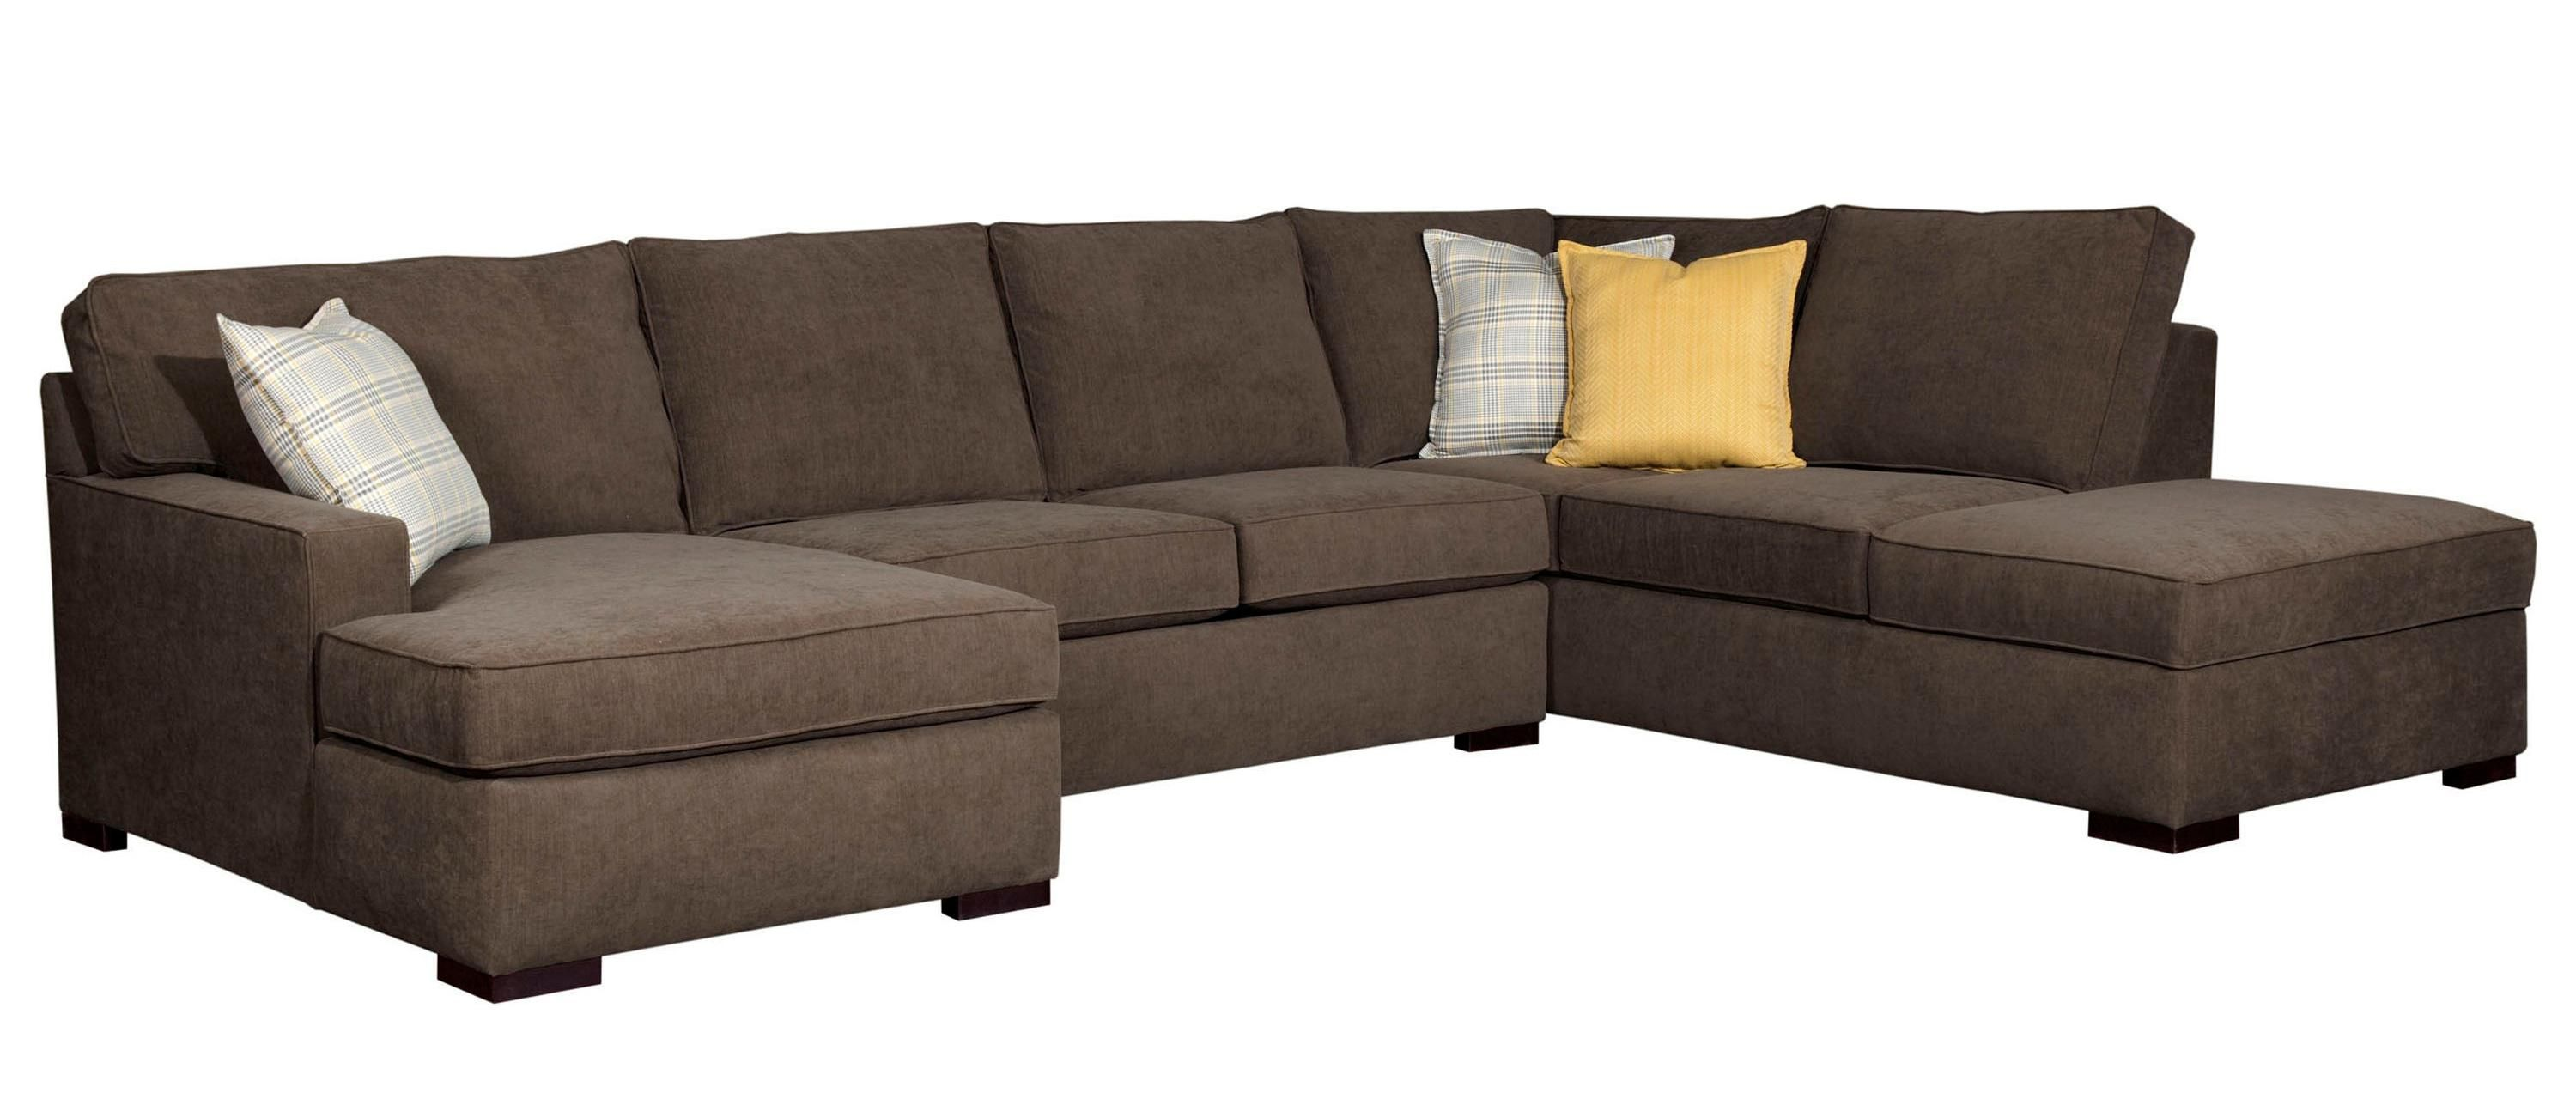 Raphael Three Piece Sectional Sofa by Broyhill Furniture Home